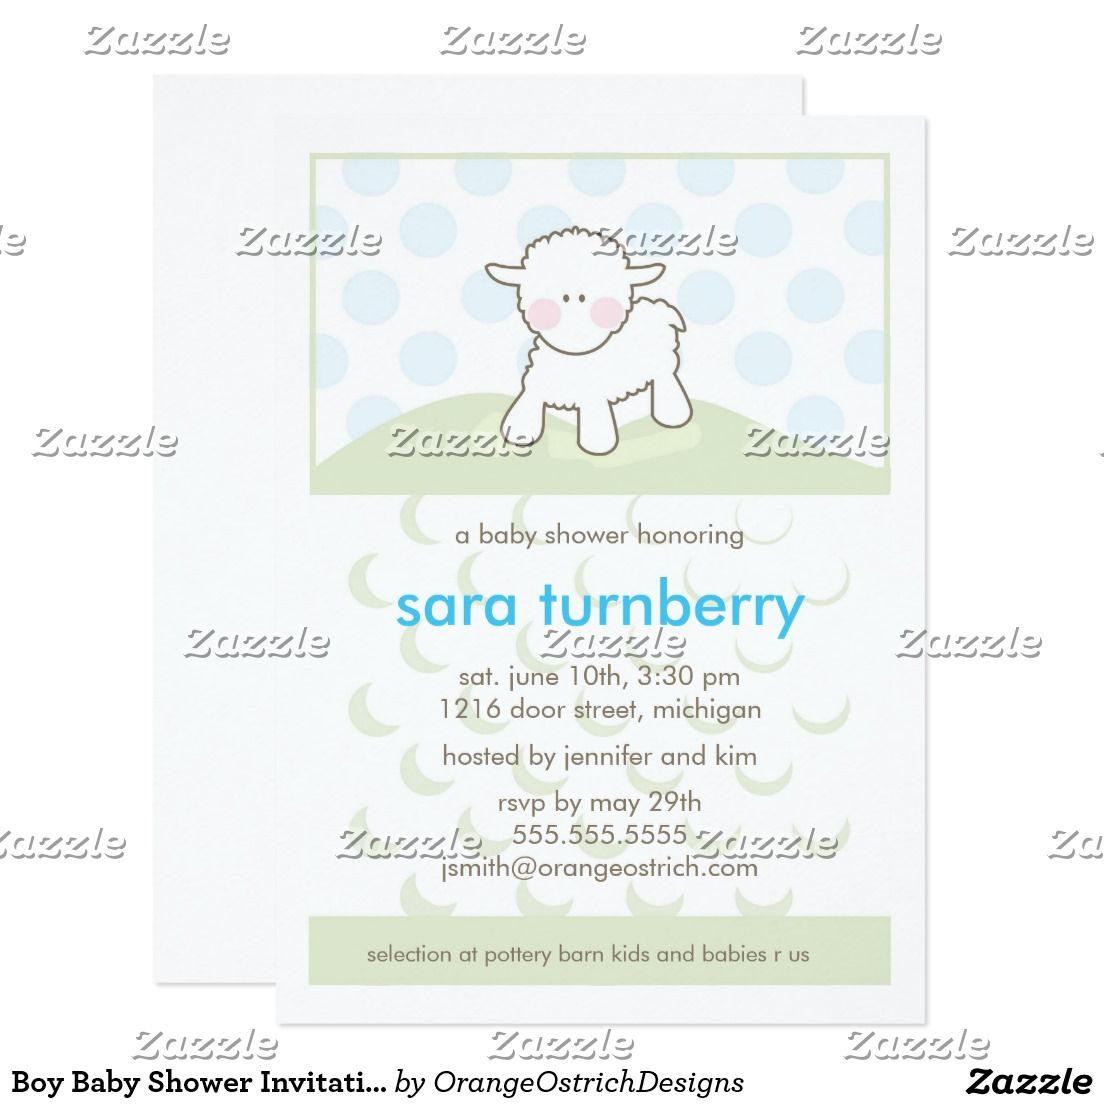 Boy Baby Shower Invitation - Little Lamb | Boy baby showers and ...